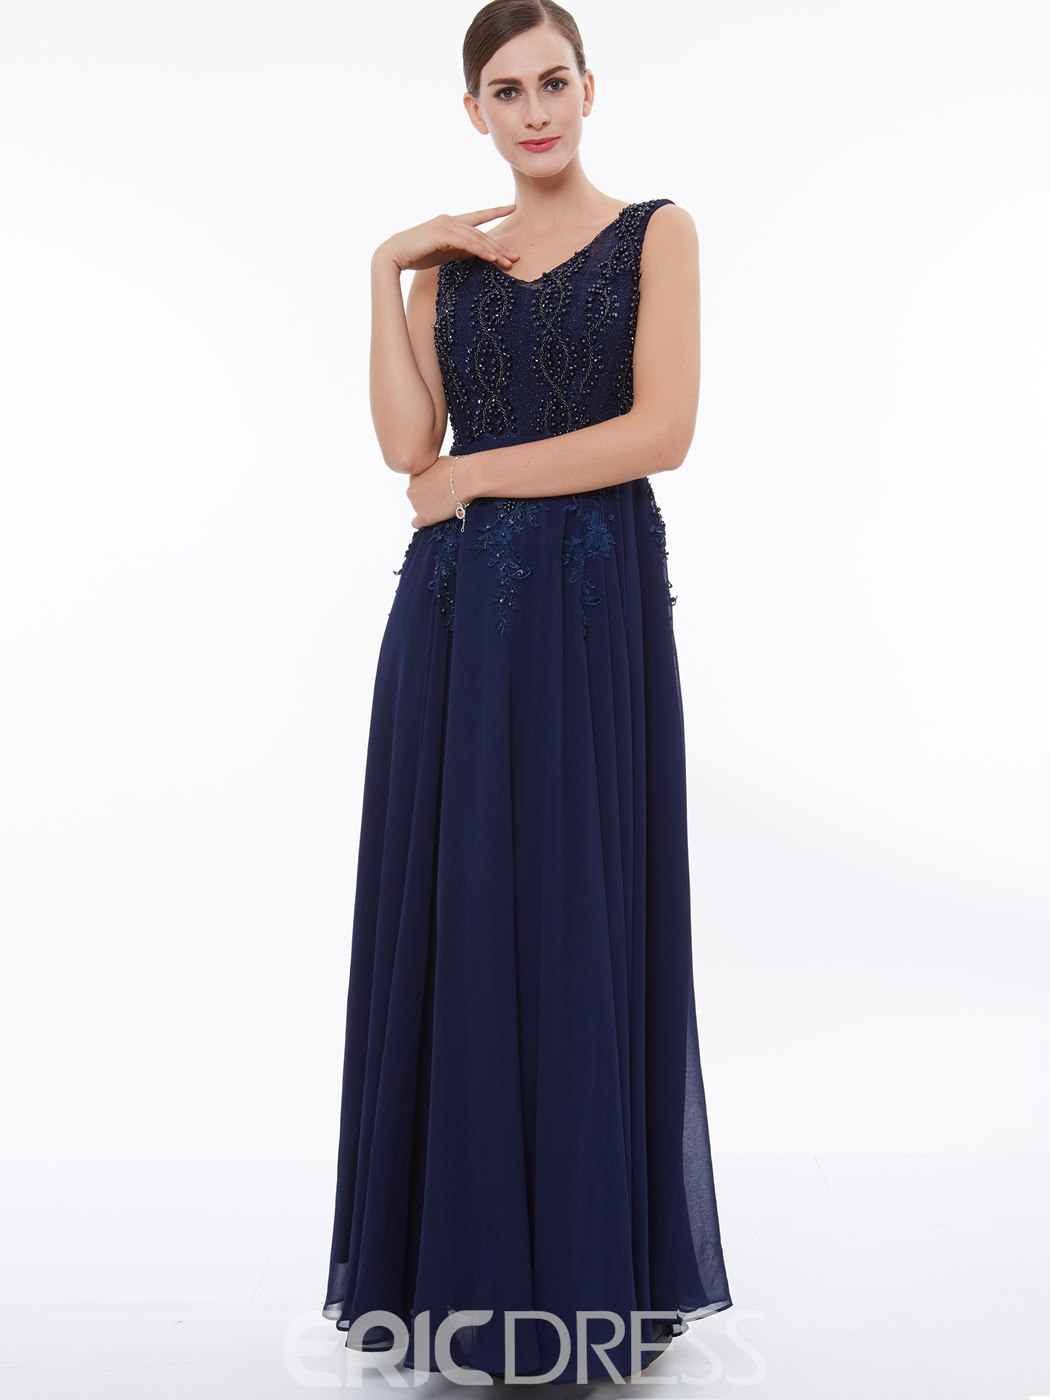 Ericdress Delicate Beaded Chiffon A Line Long Evening Dress